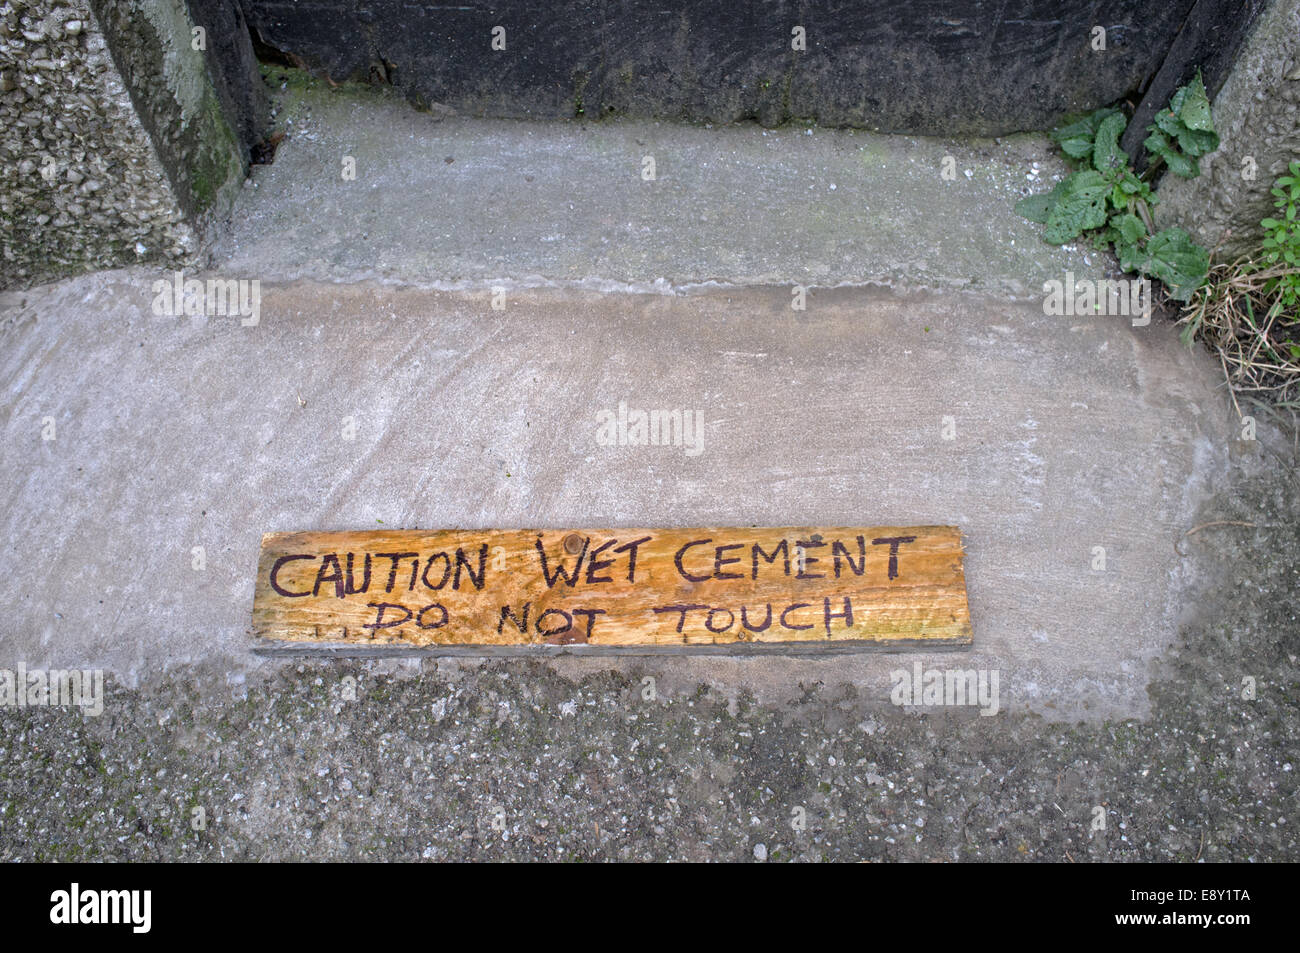 A wooden sign urging caution - Stock Image